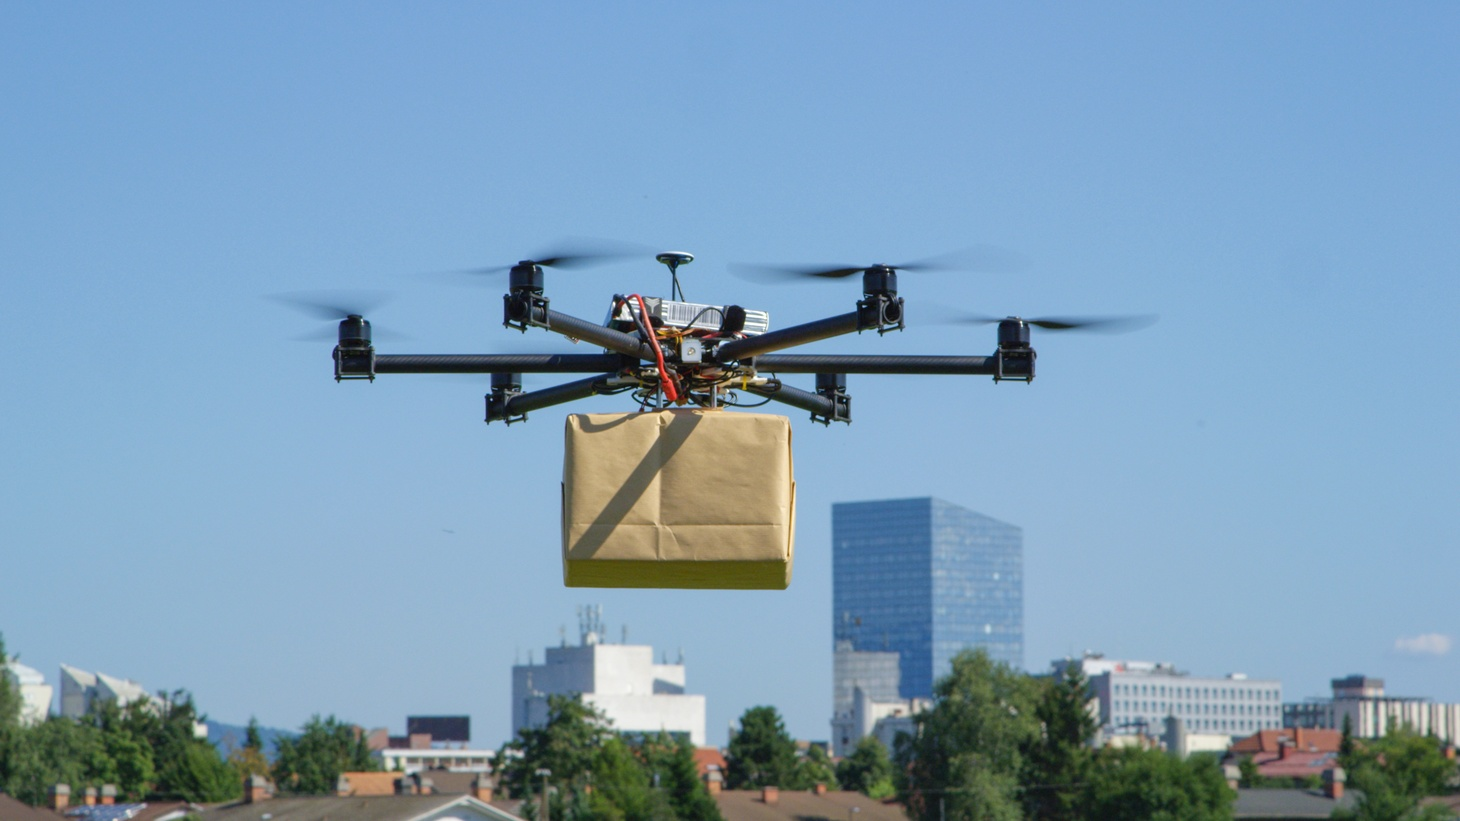 """""""If you think of the number of people, post-COVID, who are getting deliveries on a daily basis, many of those deliveries could be accomplished with a drone, small packages, right under five pounds. I expect that number will be much more than 100,000 flights a day,"""" says Gregory McNeal, a law professor at Pepperdine University."""